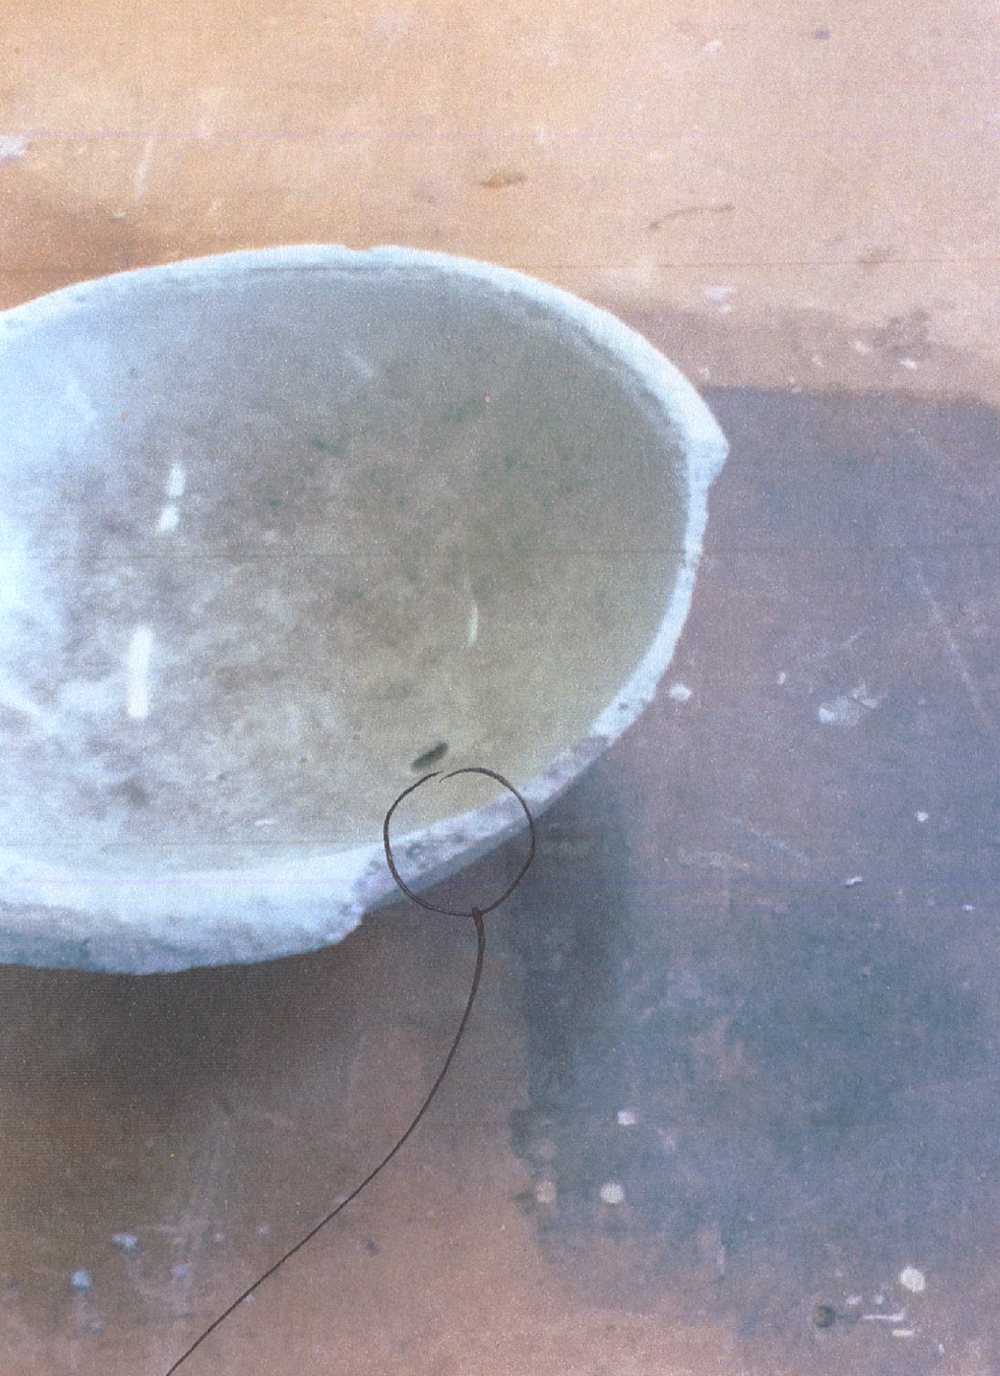 Unsuccessful cast of concrete because the interior mould and exterior mould didn't account for the needed wall thickness